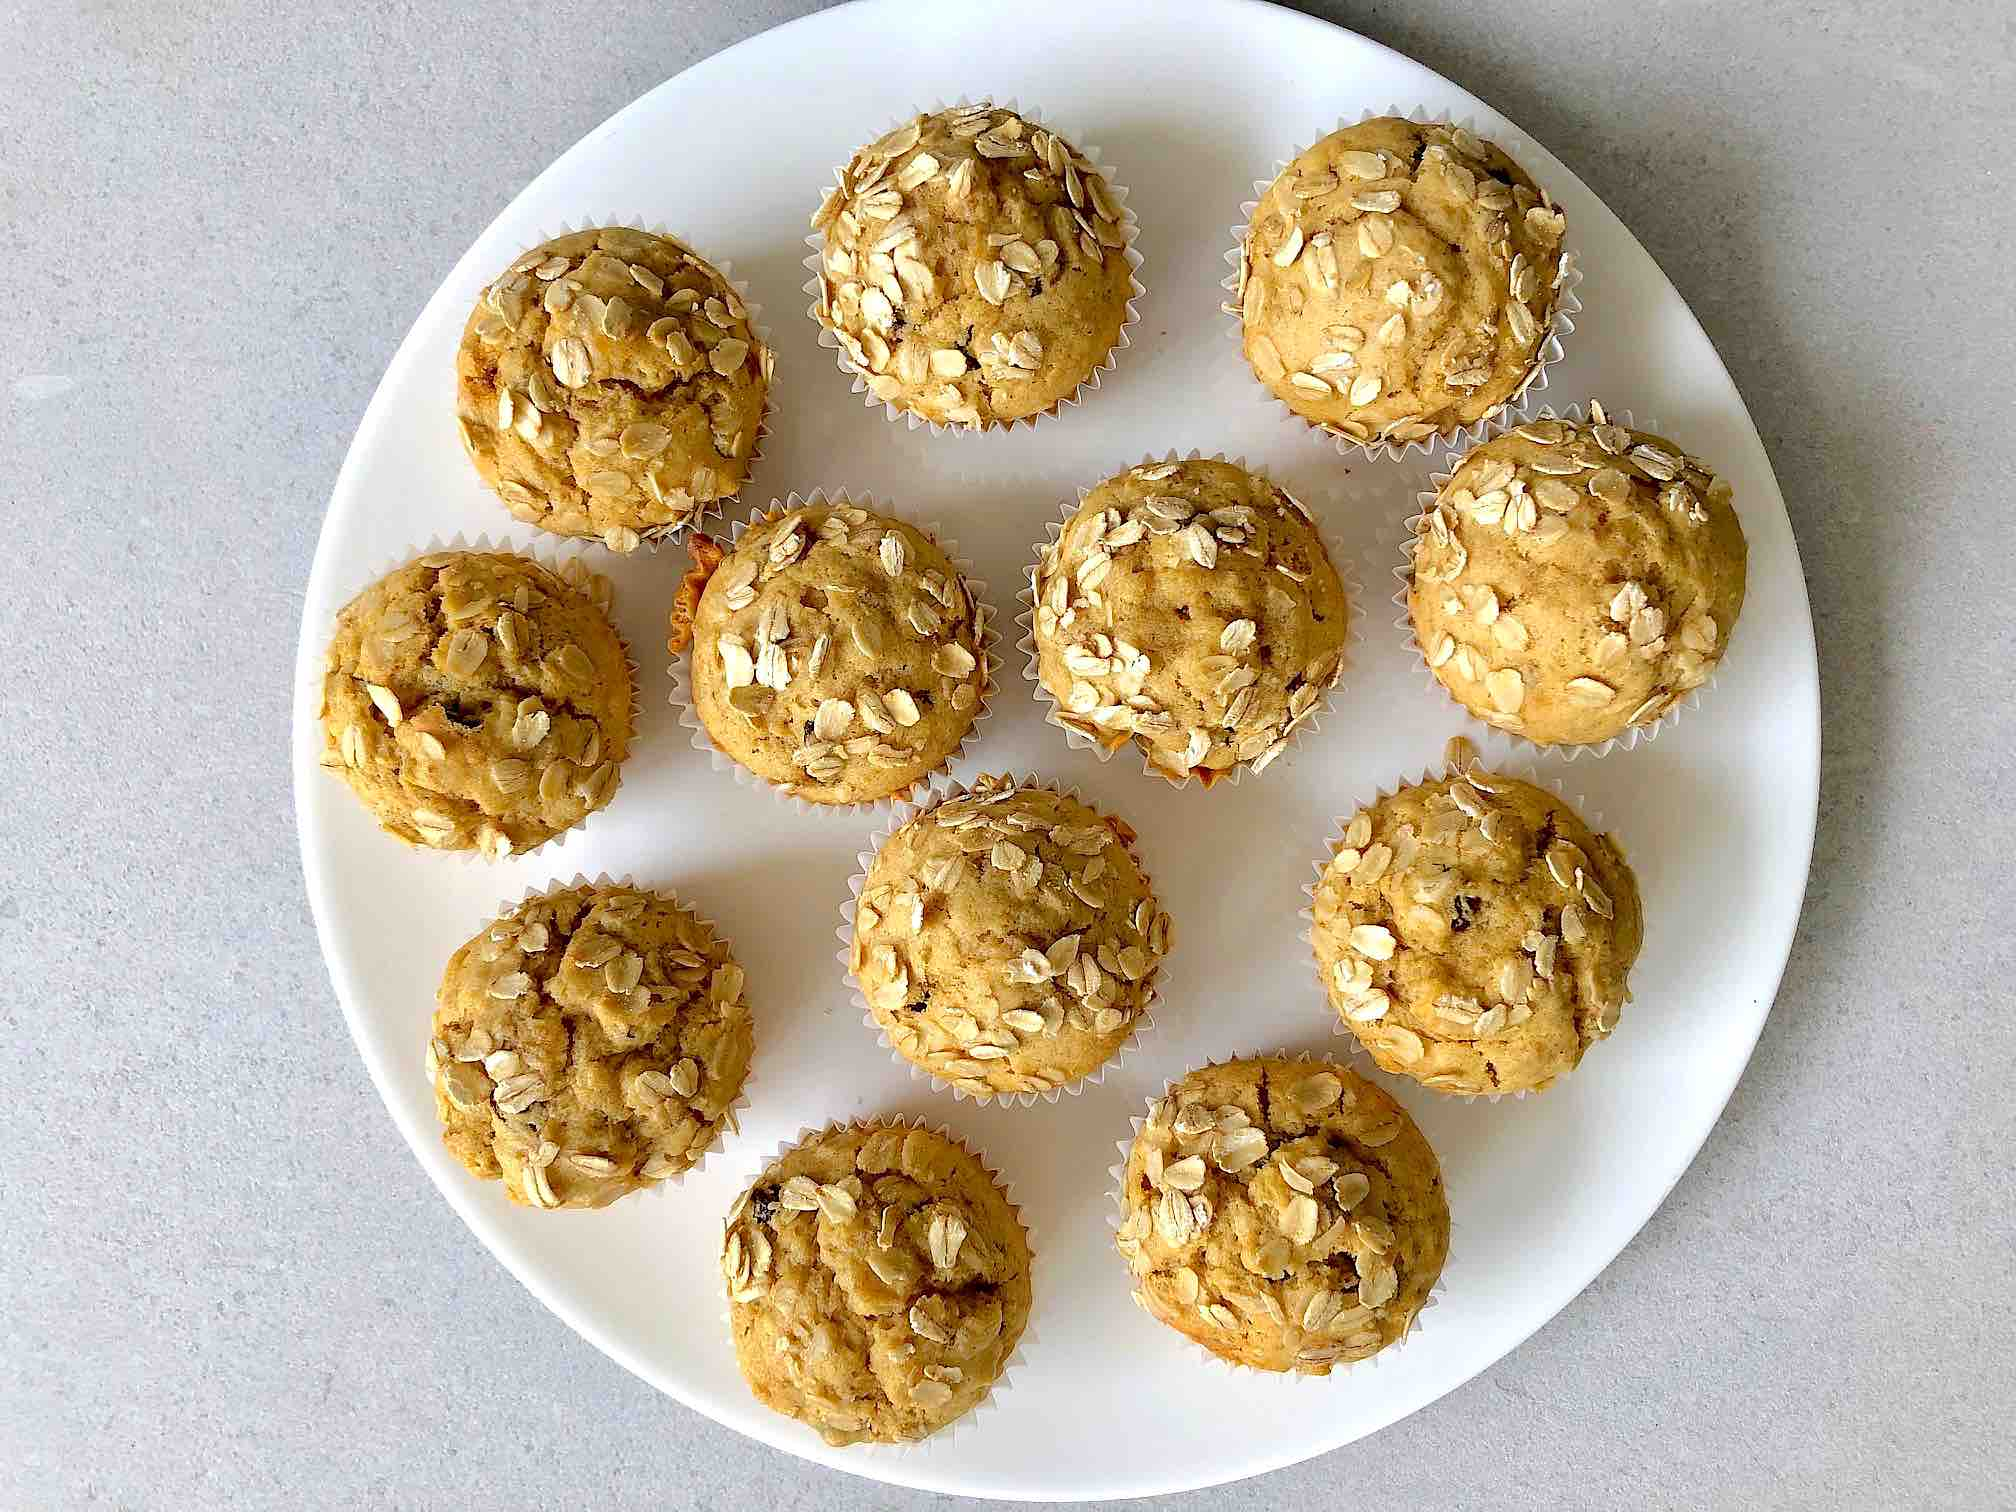 Oatmeal Muffins with apple and raisins